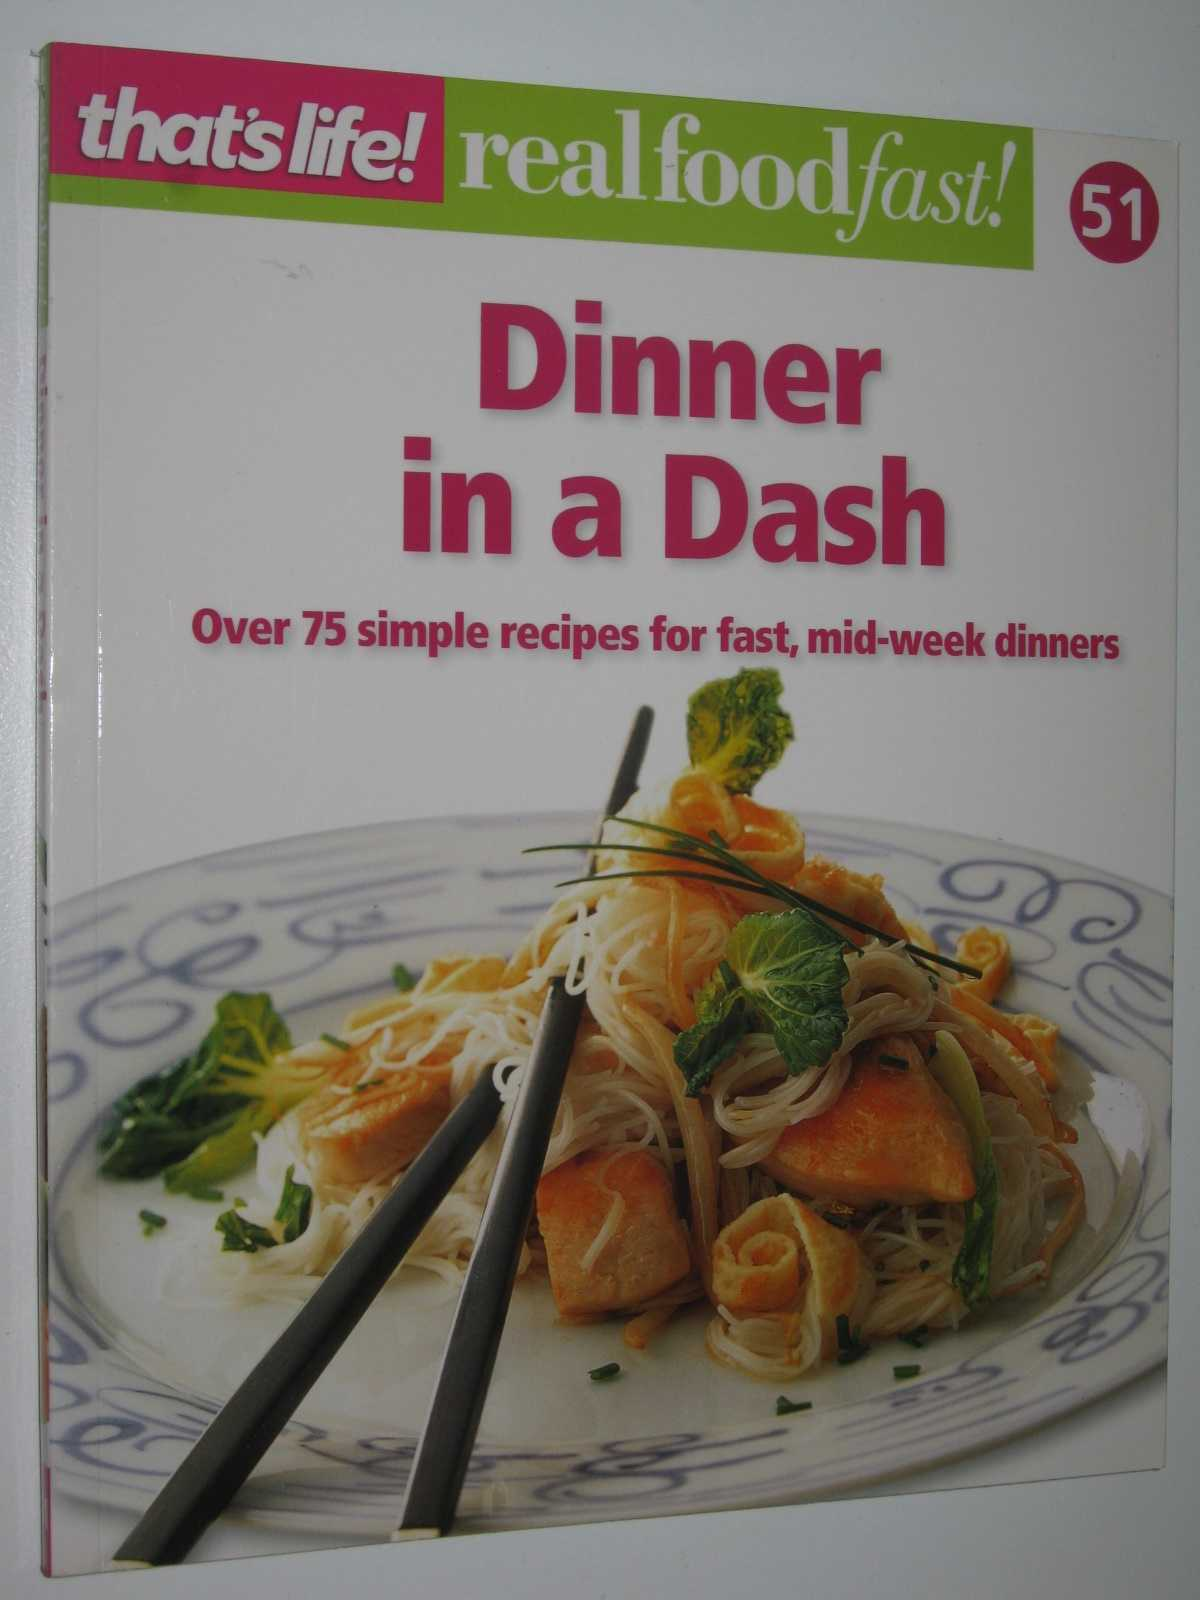 Image for Dinner in a Dash - Real Food Fast! Series #51